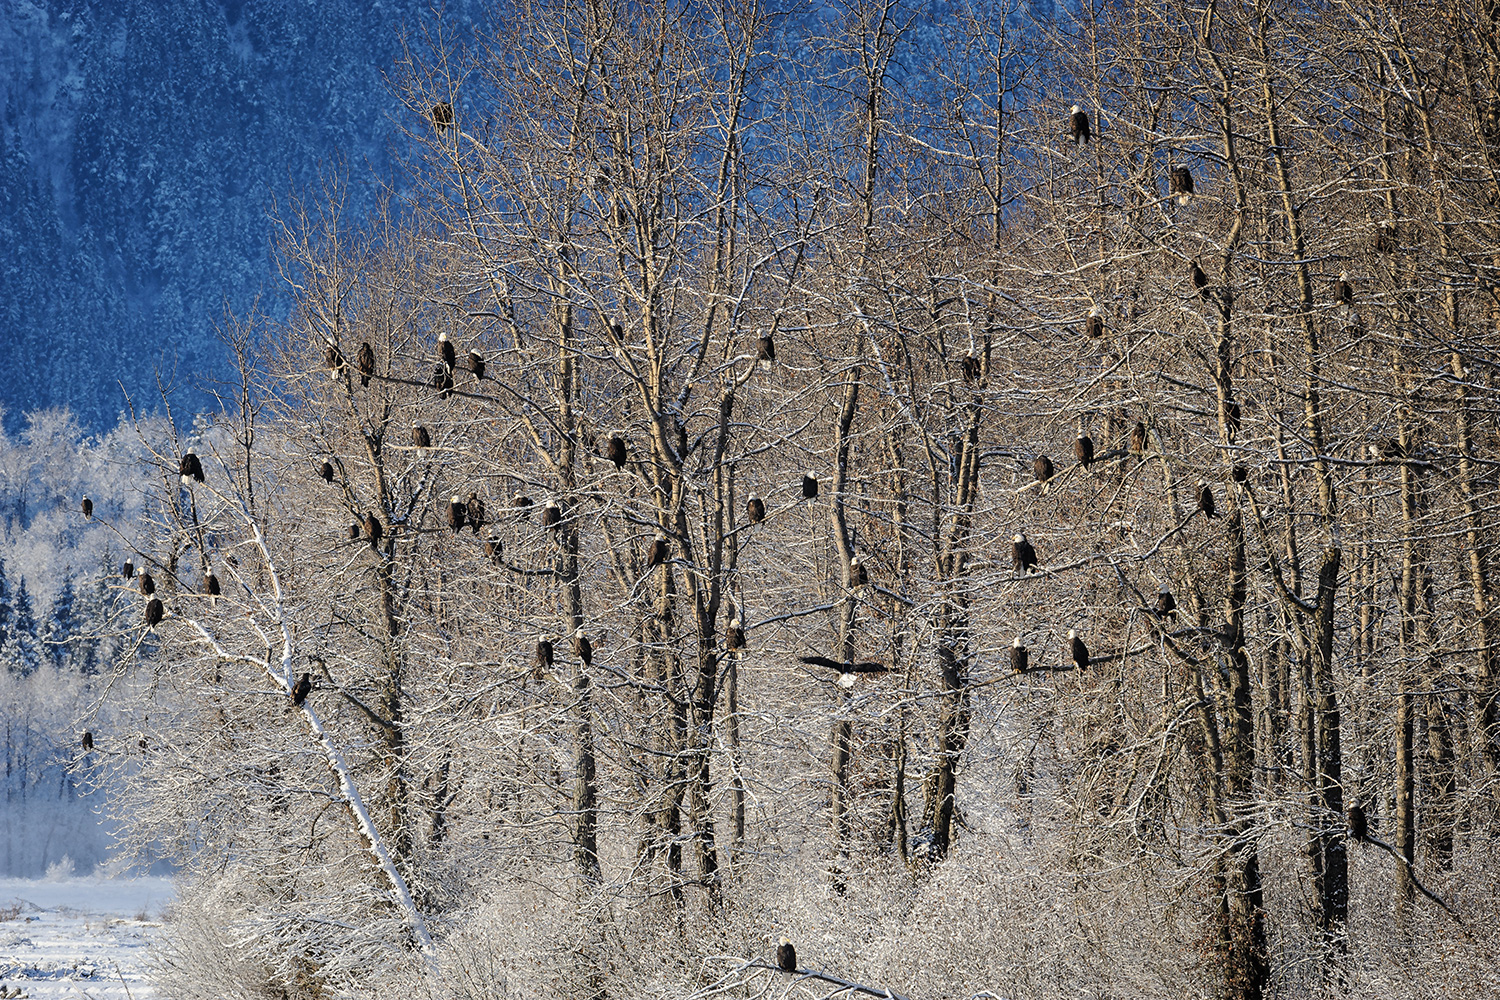 Alaska haines county - Nearly 60 Bald Eagles Crowd Together In A Stand Of Cottonwood Trees In The Chilkat Bald Eagle Preserve Thought To Host The World S Greatest Congregation Of